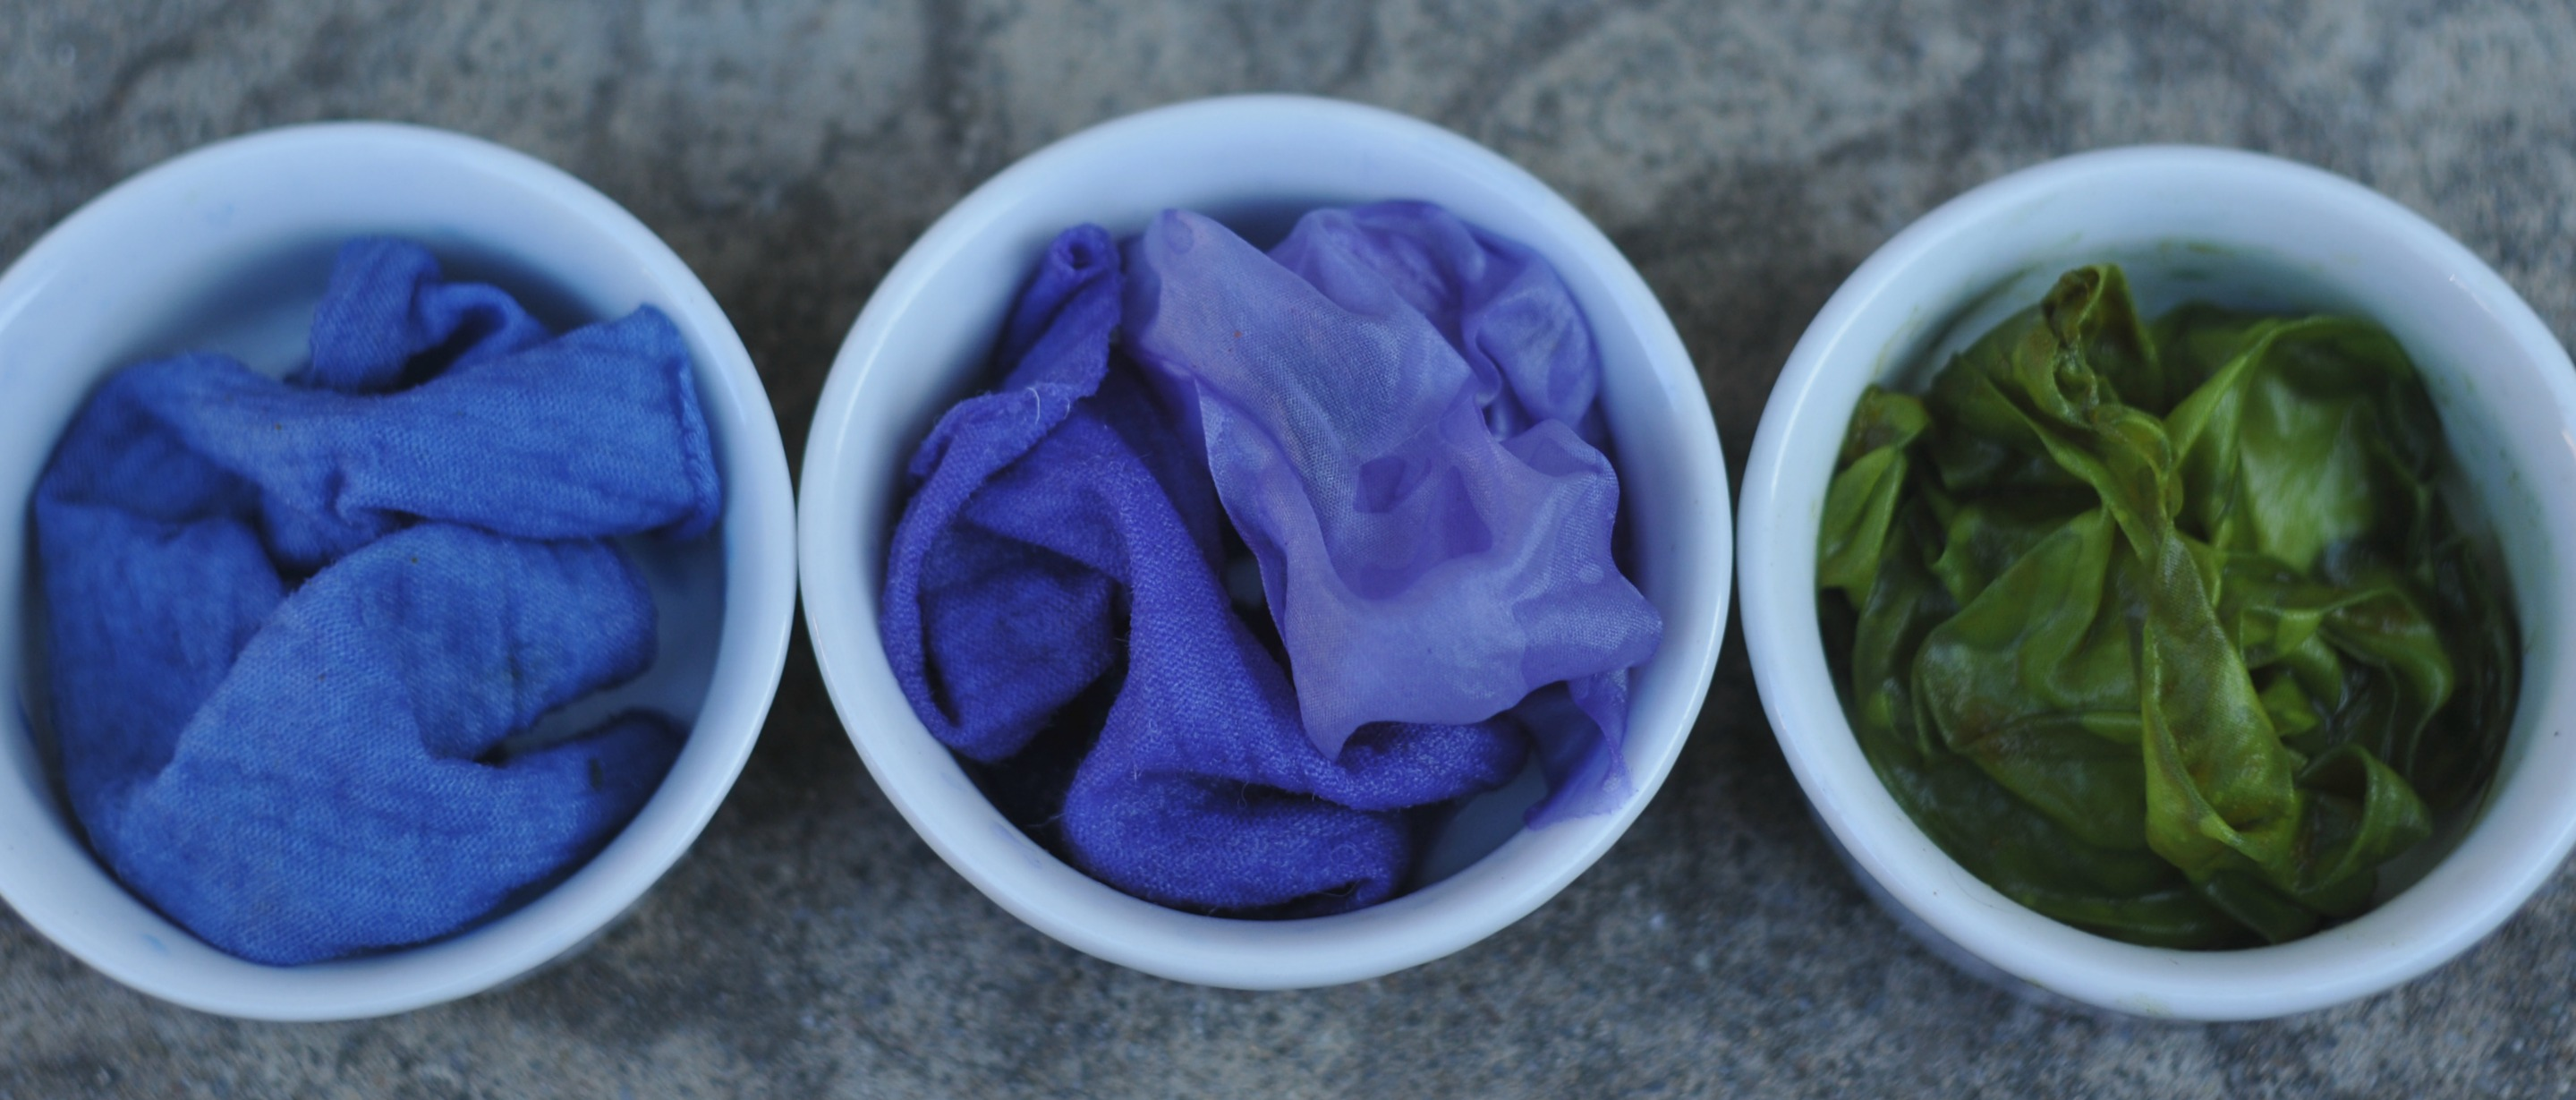 Blue Violet And Green Obovate Designs